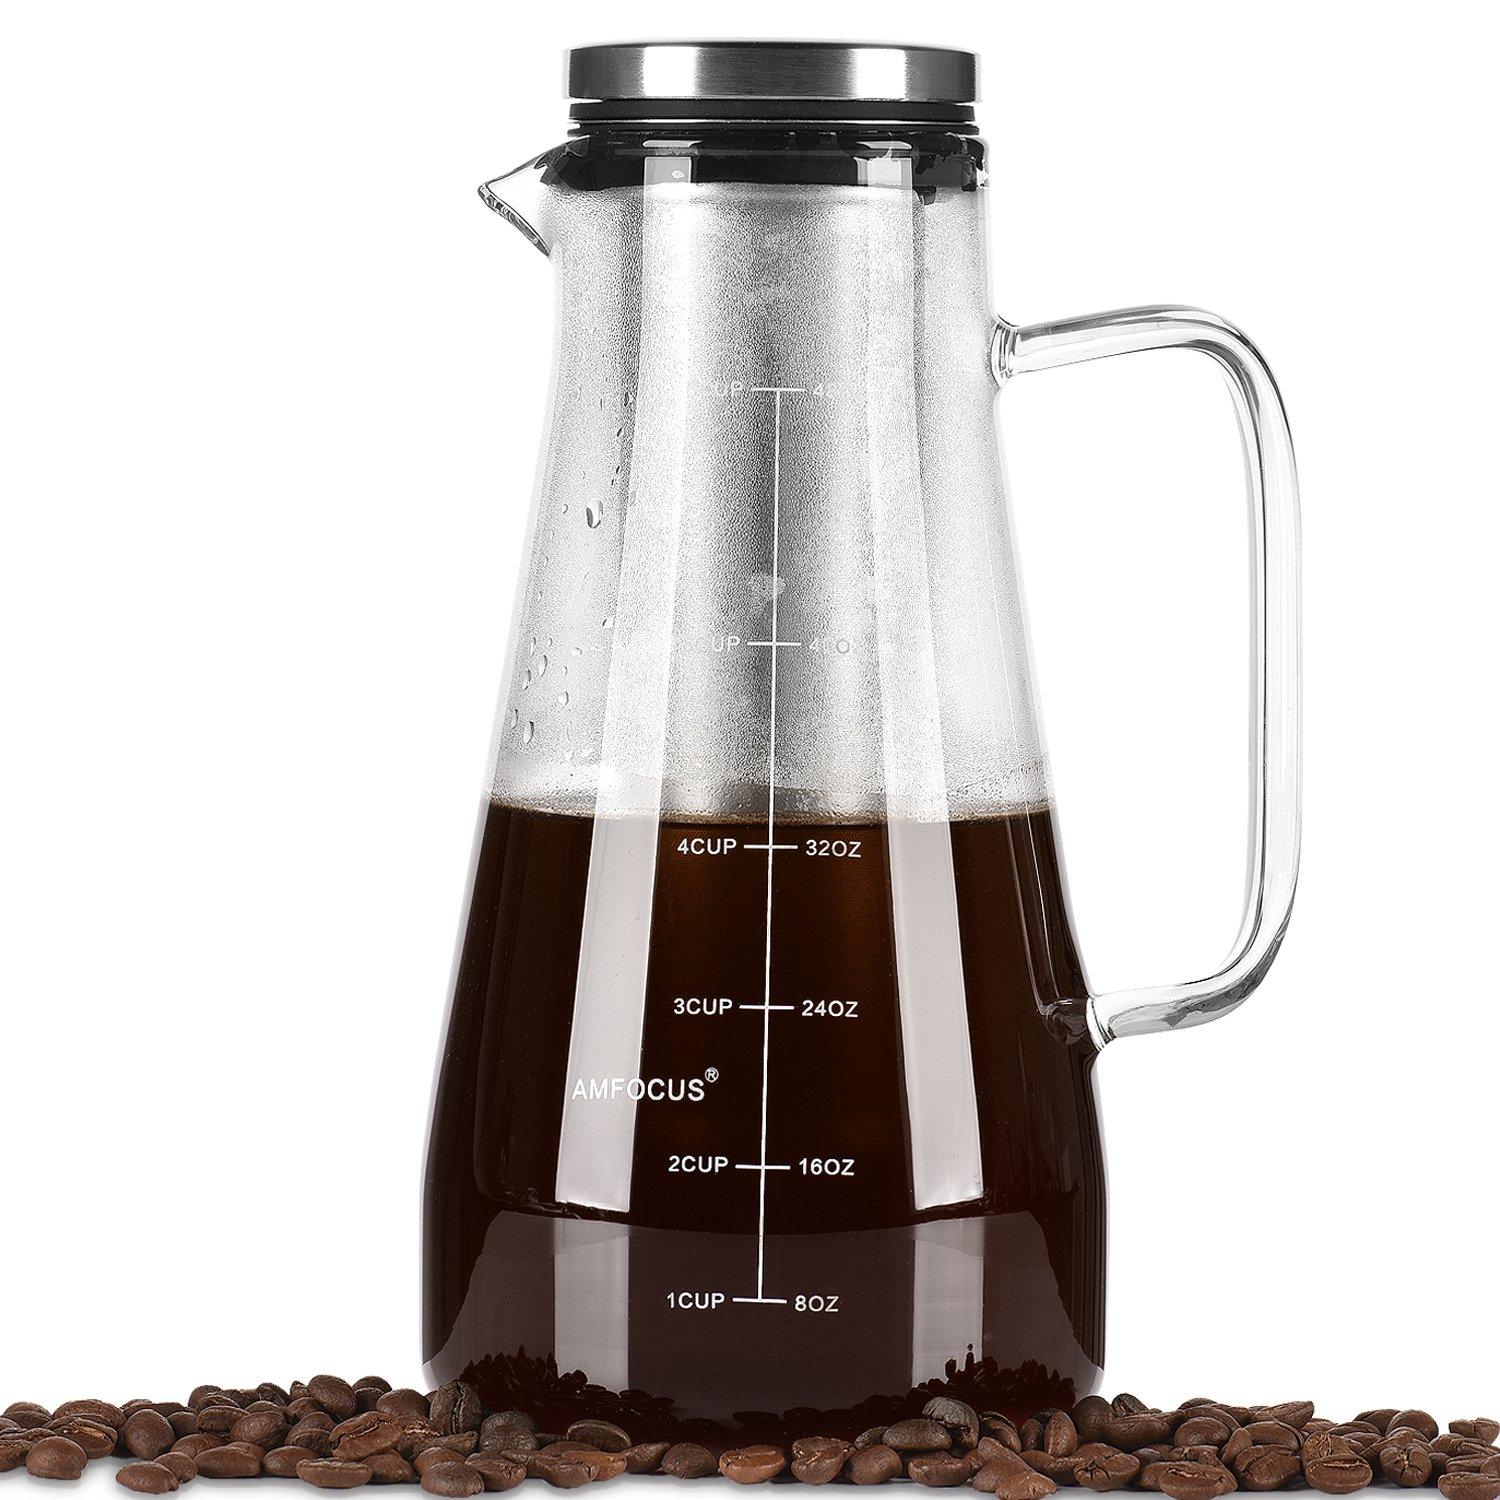 Glass Coffee Pot YOULANDA Glass teapots Pitcher with Reusable Fine Mesh Filter Glass Carafe Homemade Iced Tea Brewer and Coffee Cold Brew Coffee Maker 48 Ounce//1.5QT